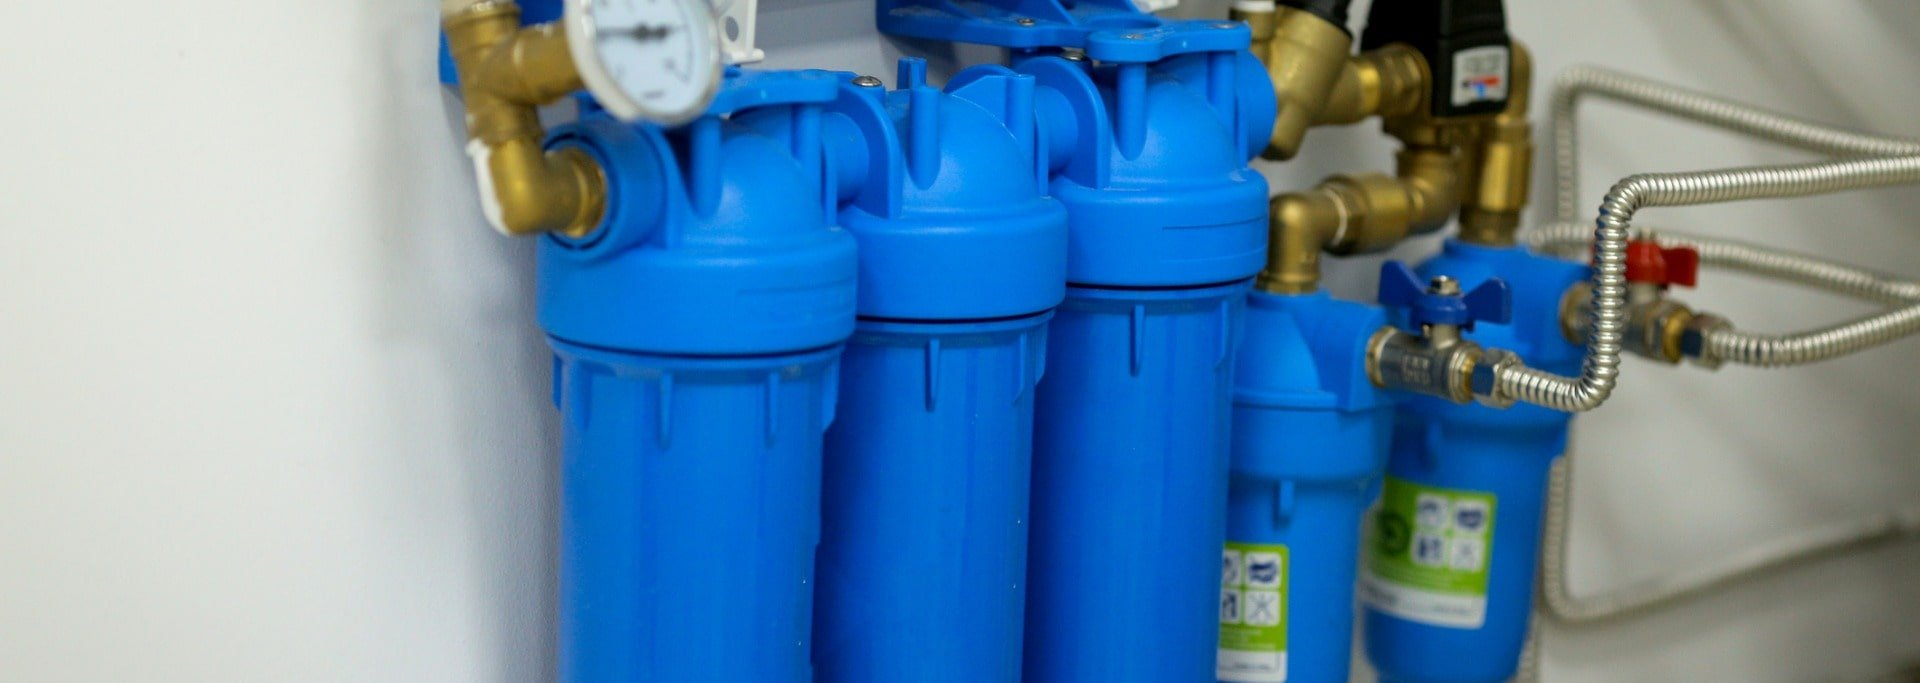 under-sink-water-filter-system-in-a-hospital-picture-id1172864559-min